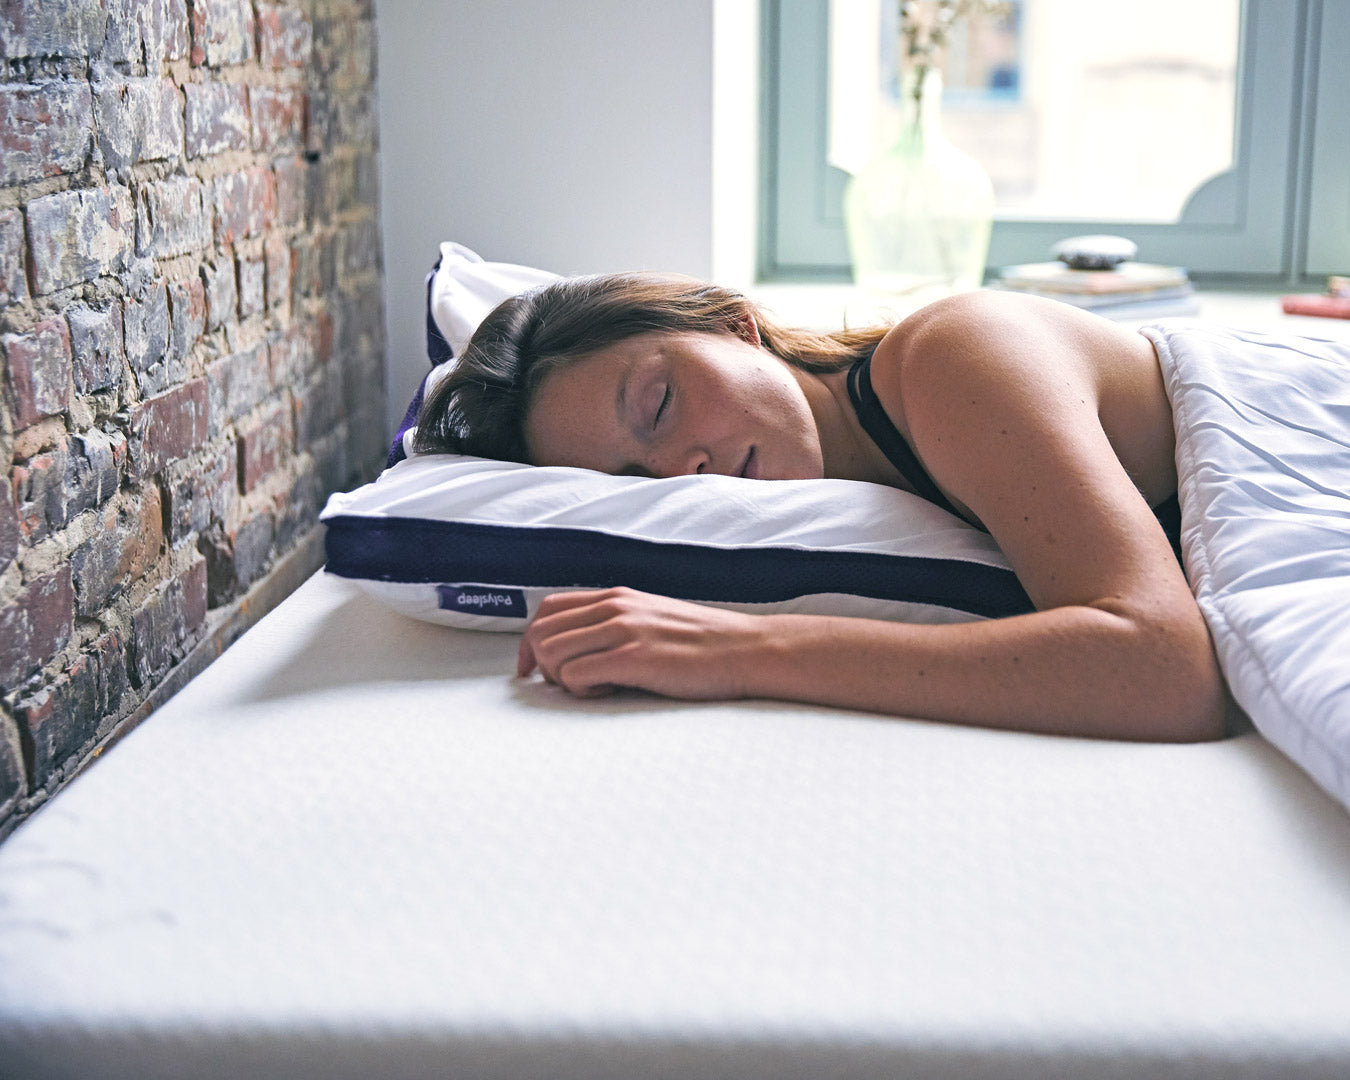 Pillow with adjustable height: Here is how the Polysleep pillow works